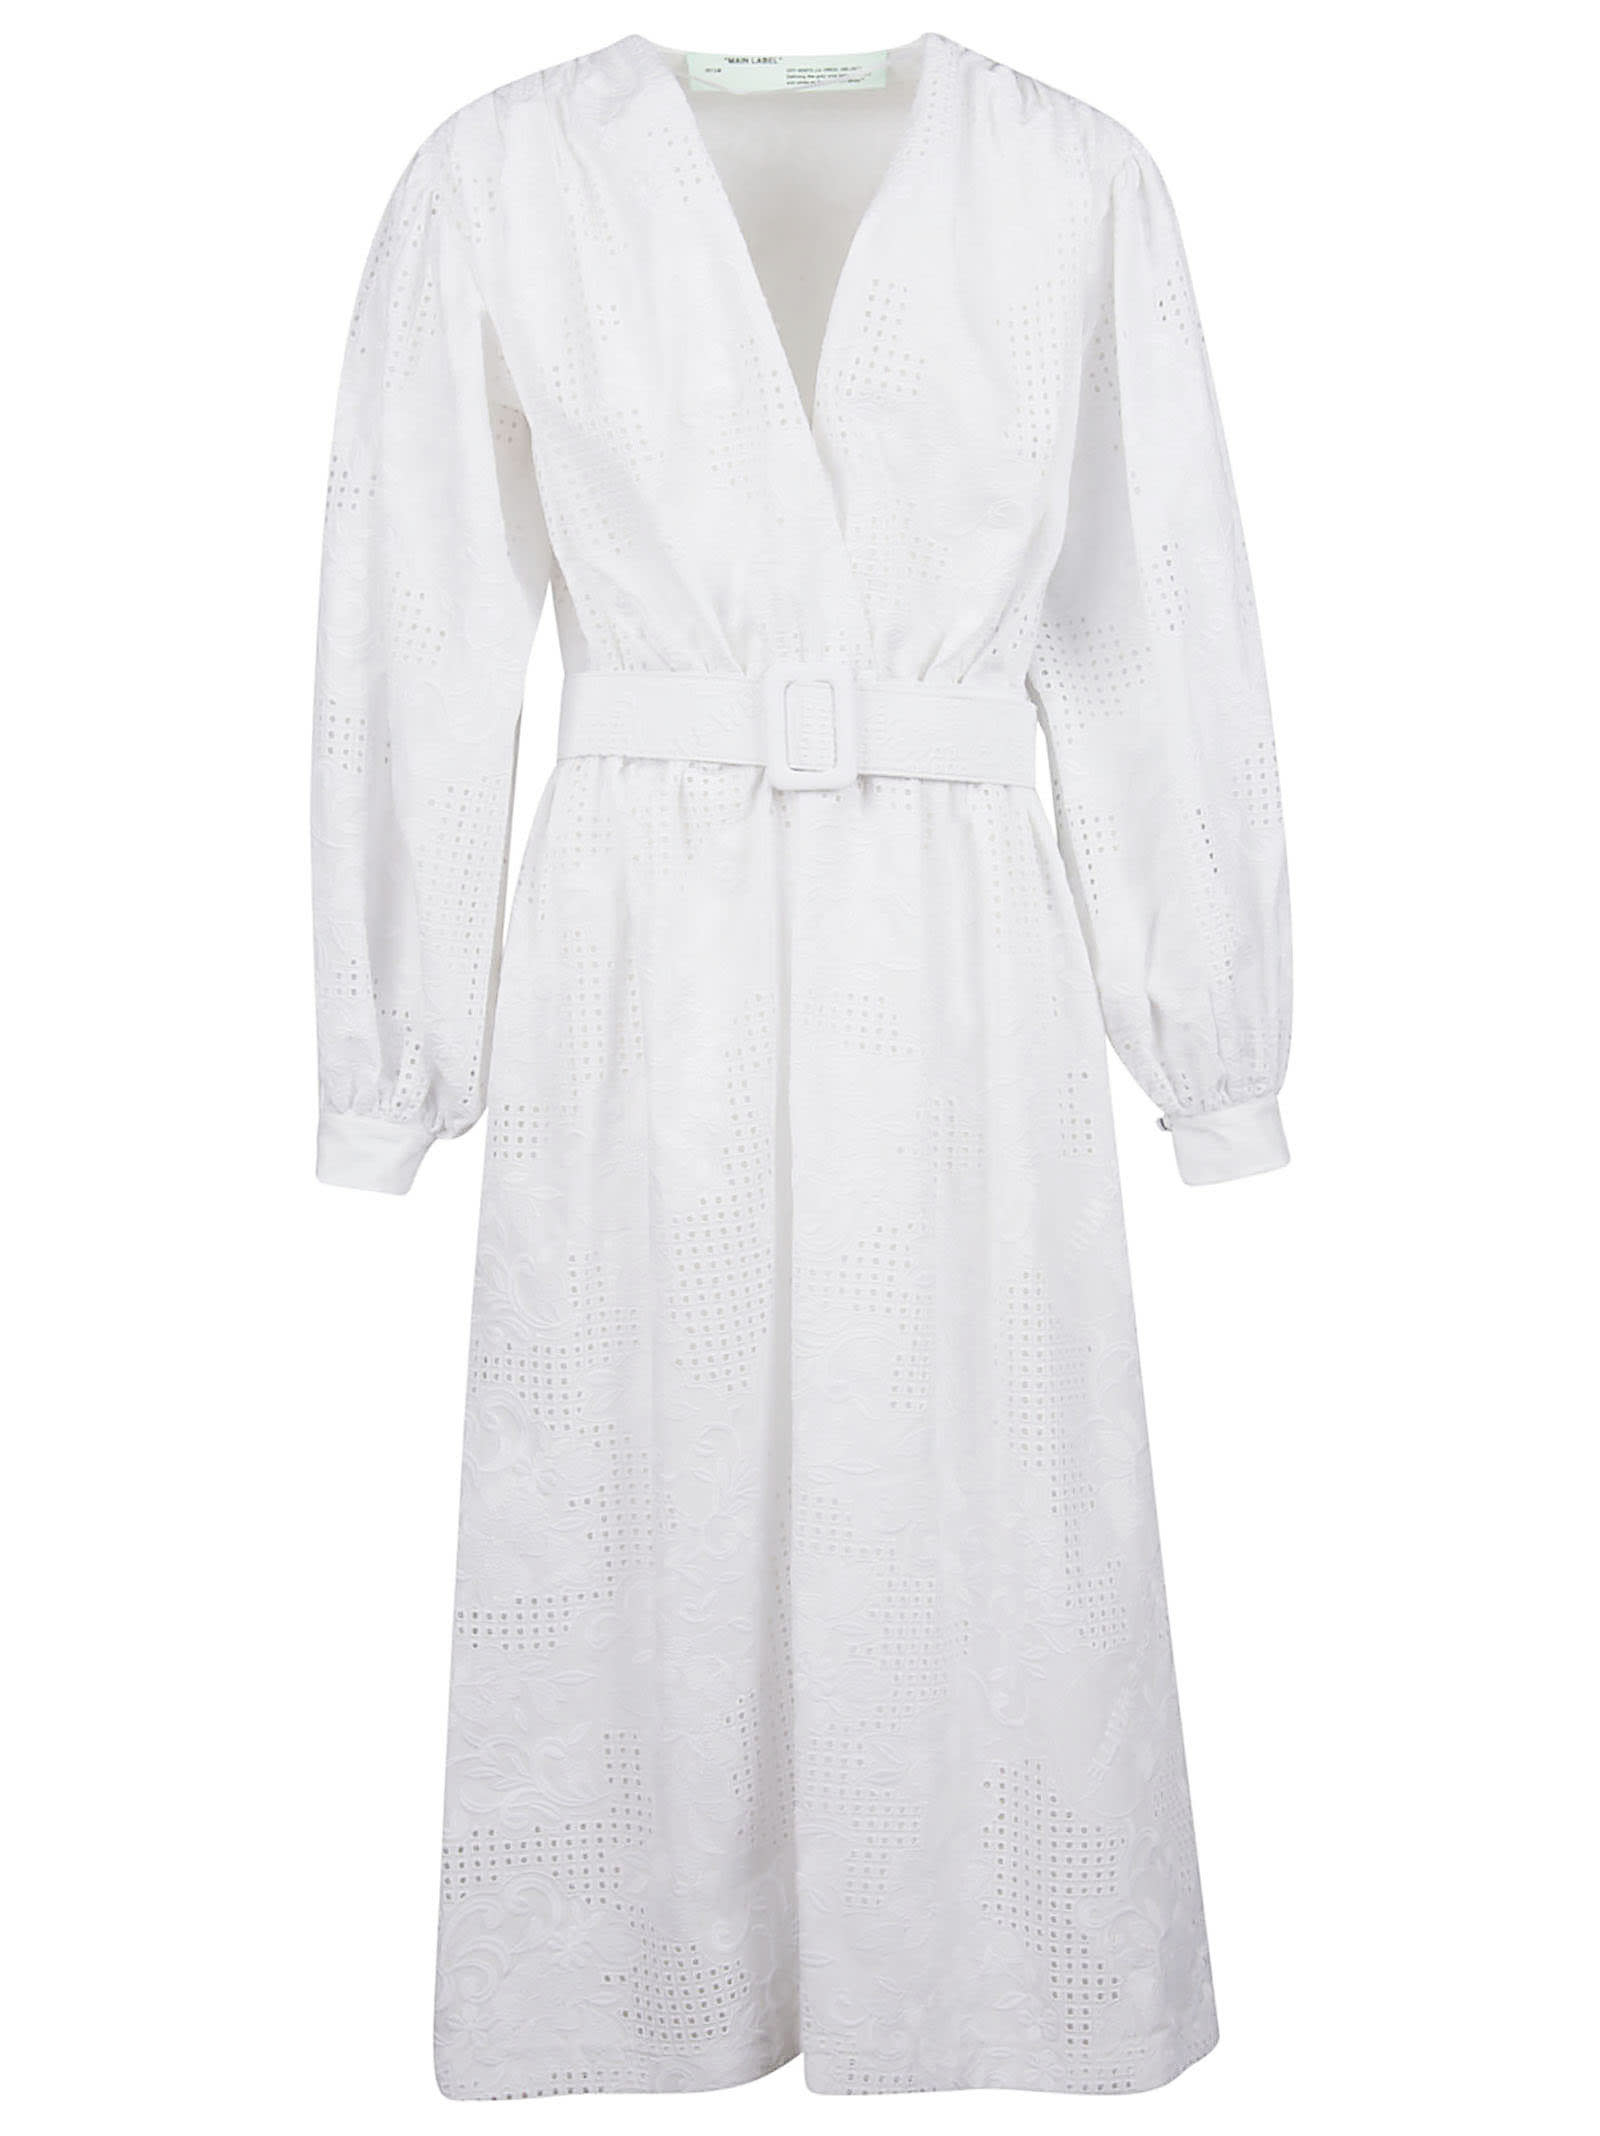 Off-White Poplin Midi Dress